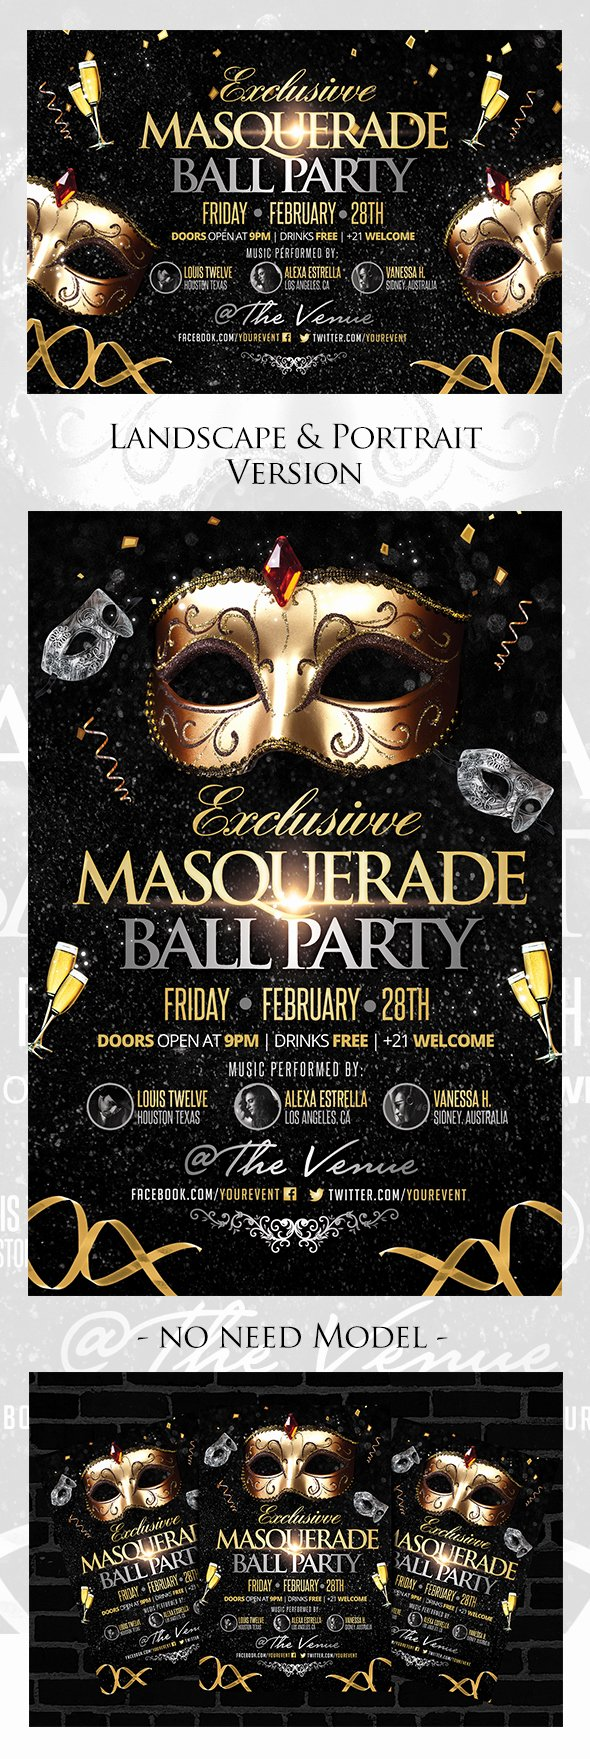 Masquerade Ball Invitations Free Templates Lovely Exclusive Masquerade Ball Party Flyers Template On Behance